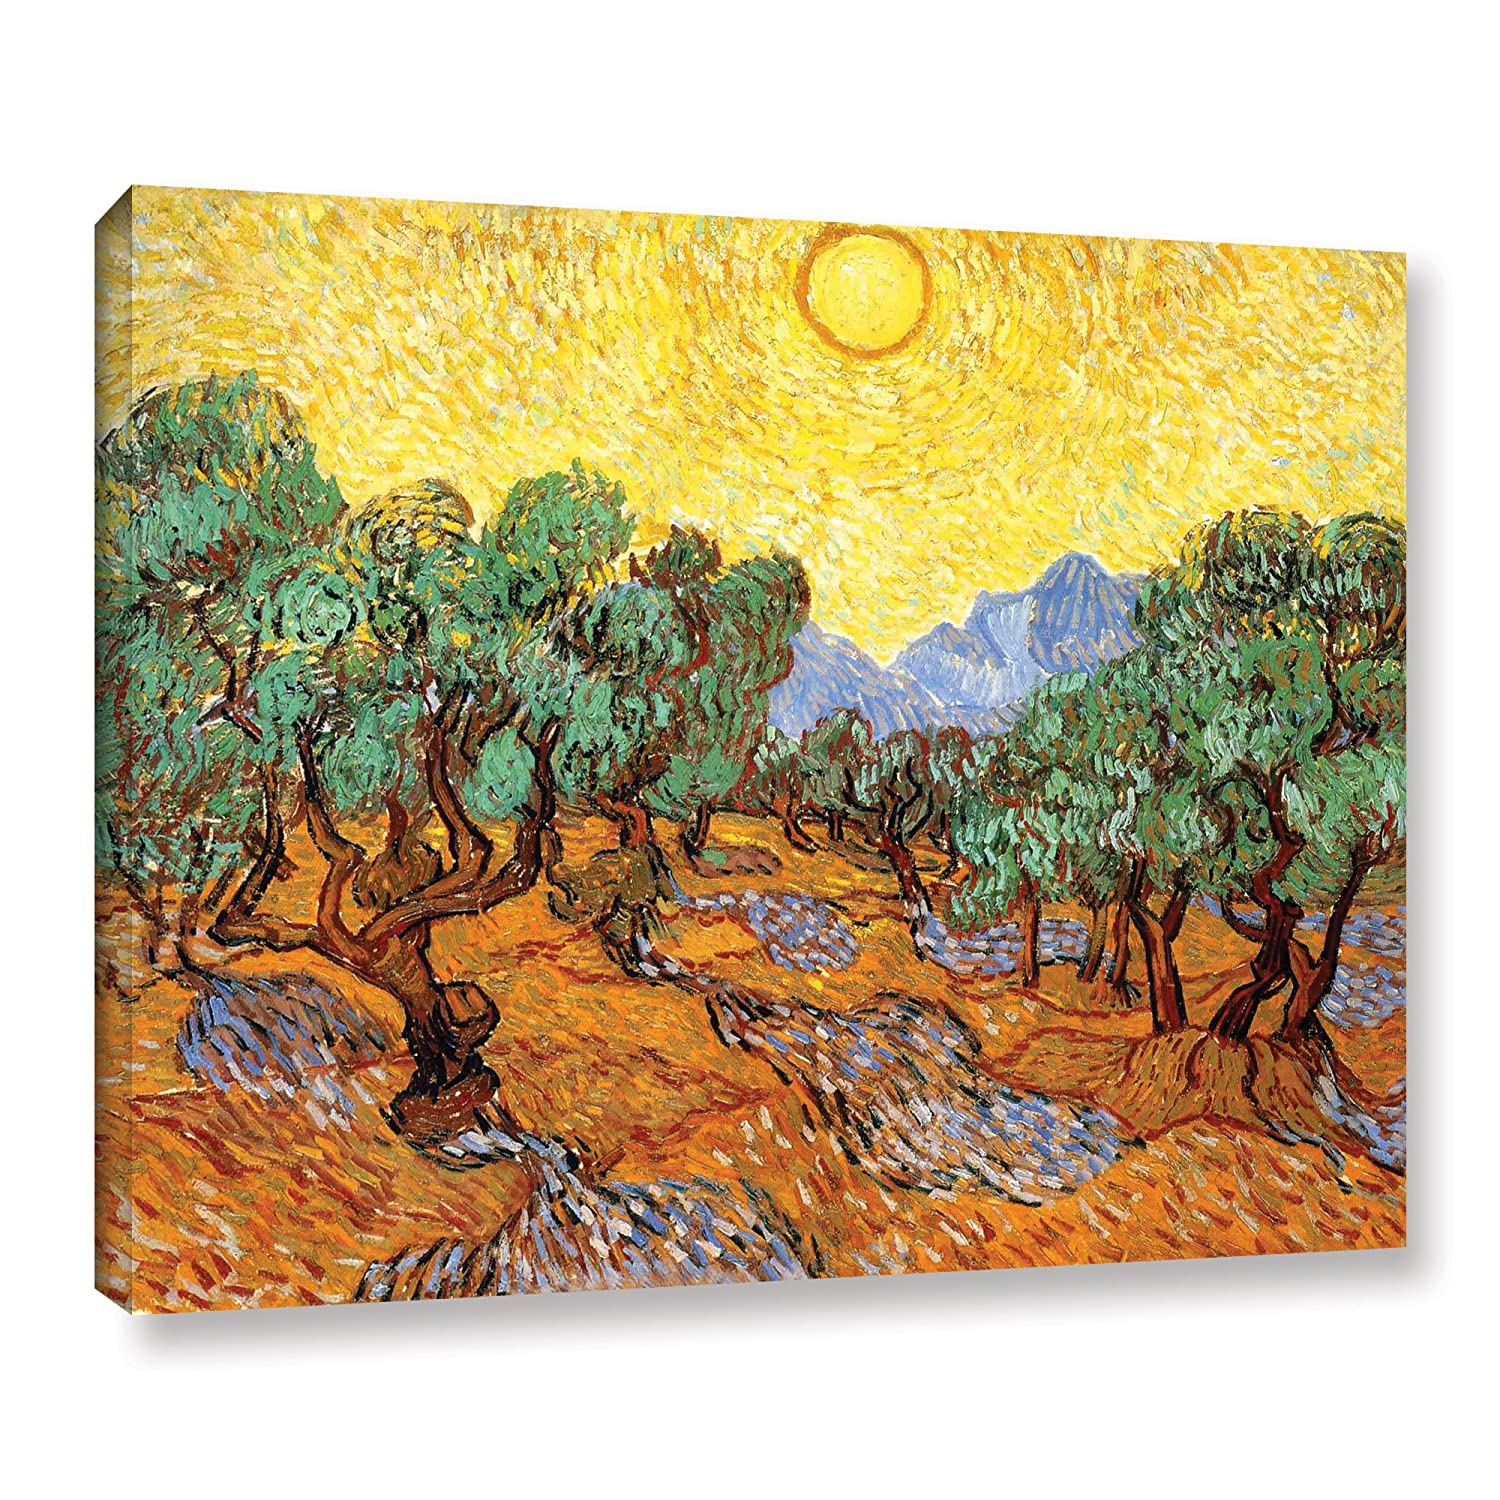 ArtWall Vincent Vangogh's Olive Trees with Yellow Skies and Sun, Gallery Wrapped Canvas, 14 by 18-Inch 0van013a1418w